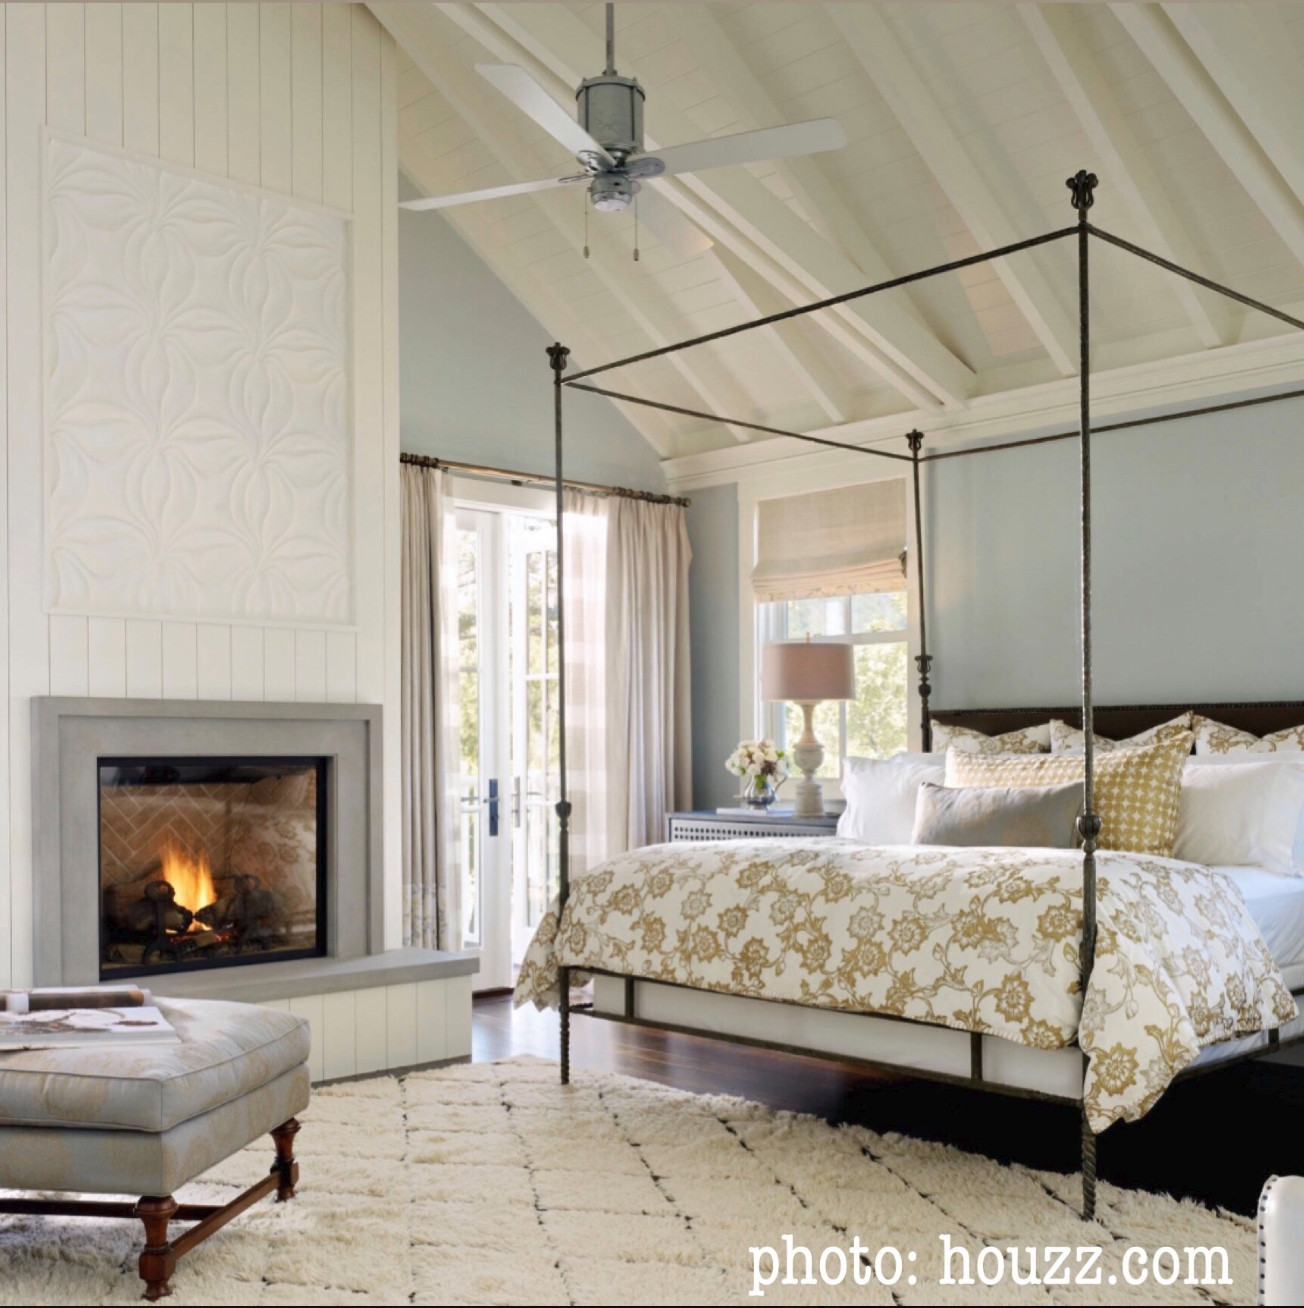 Sloped Ceiling Bedroom Ideas Luxury some People May Think A Room Looks Like It Has More